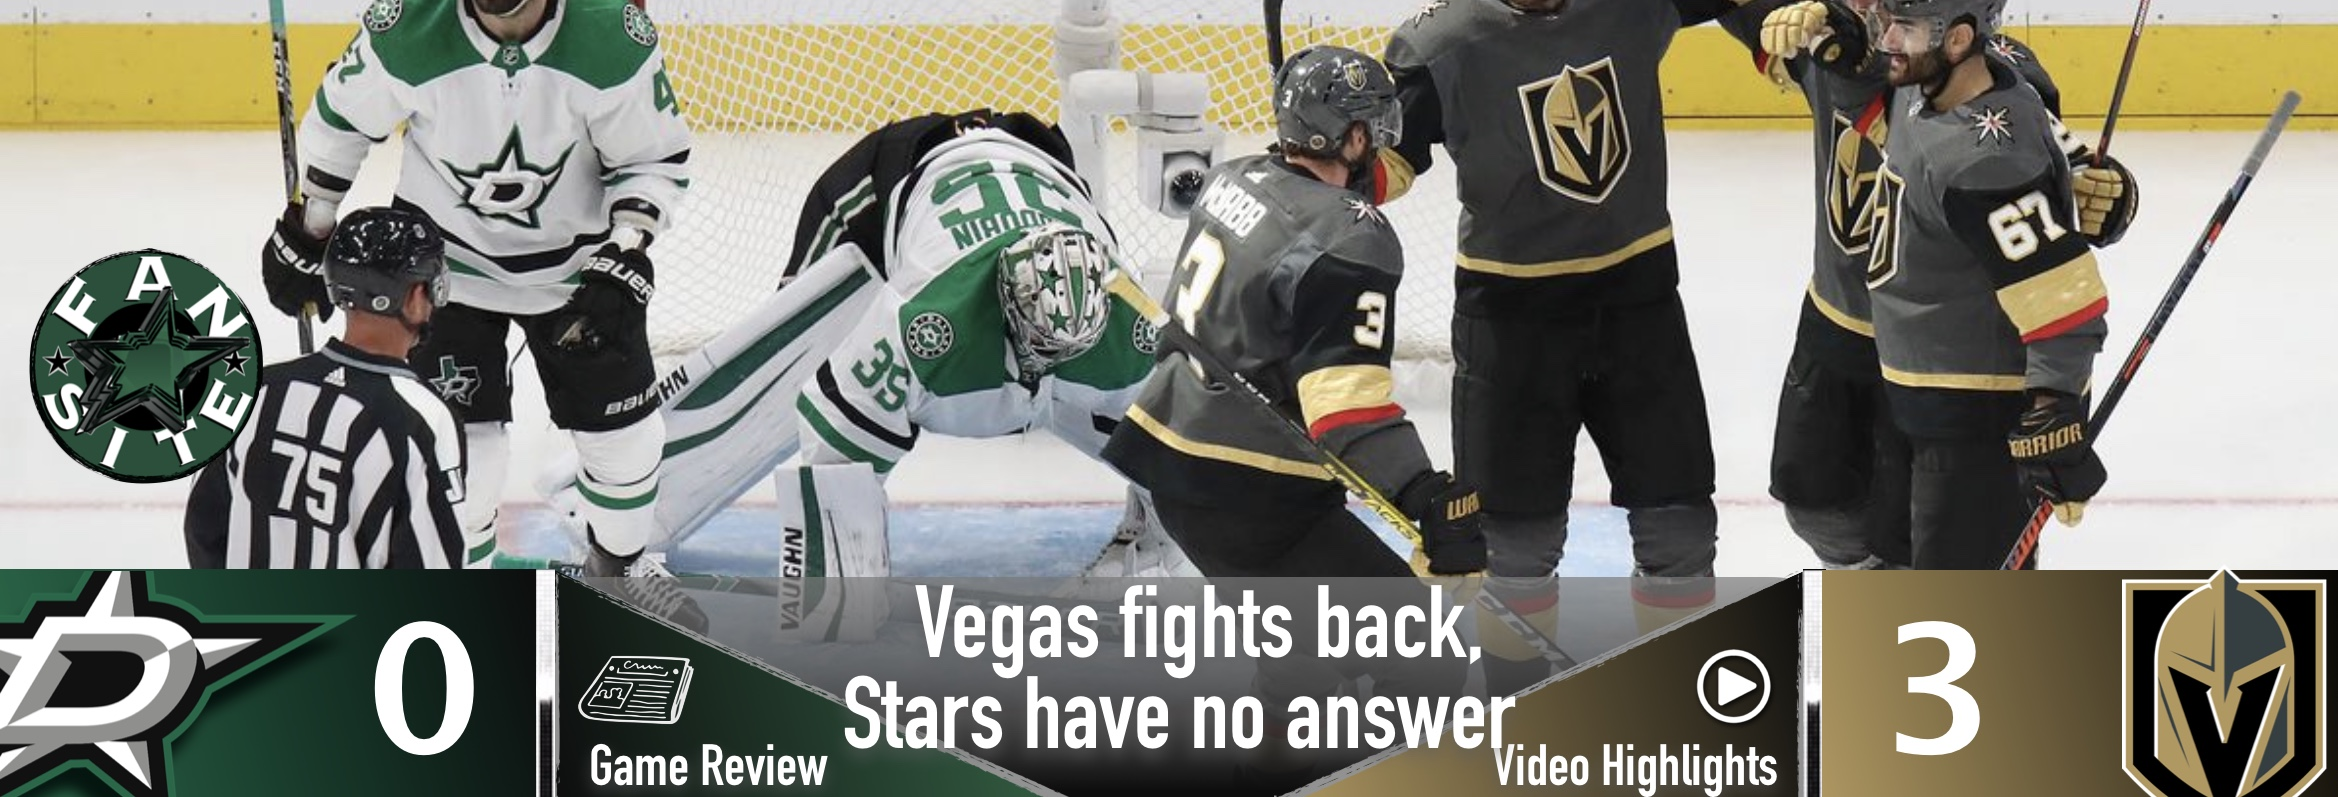 Vegas fights back, Stars have no answer